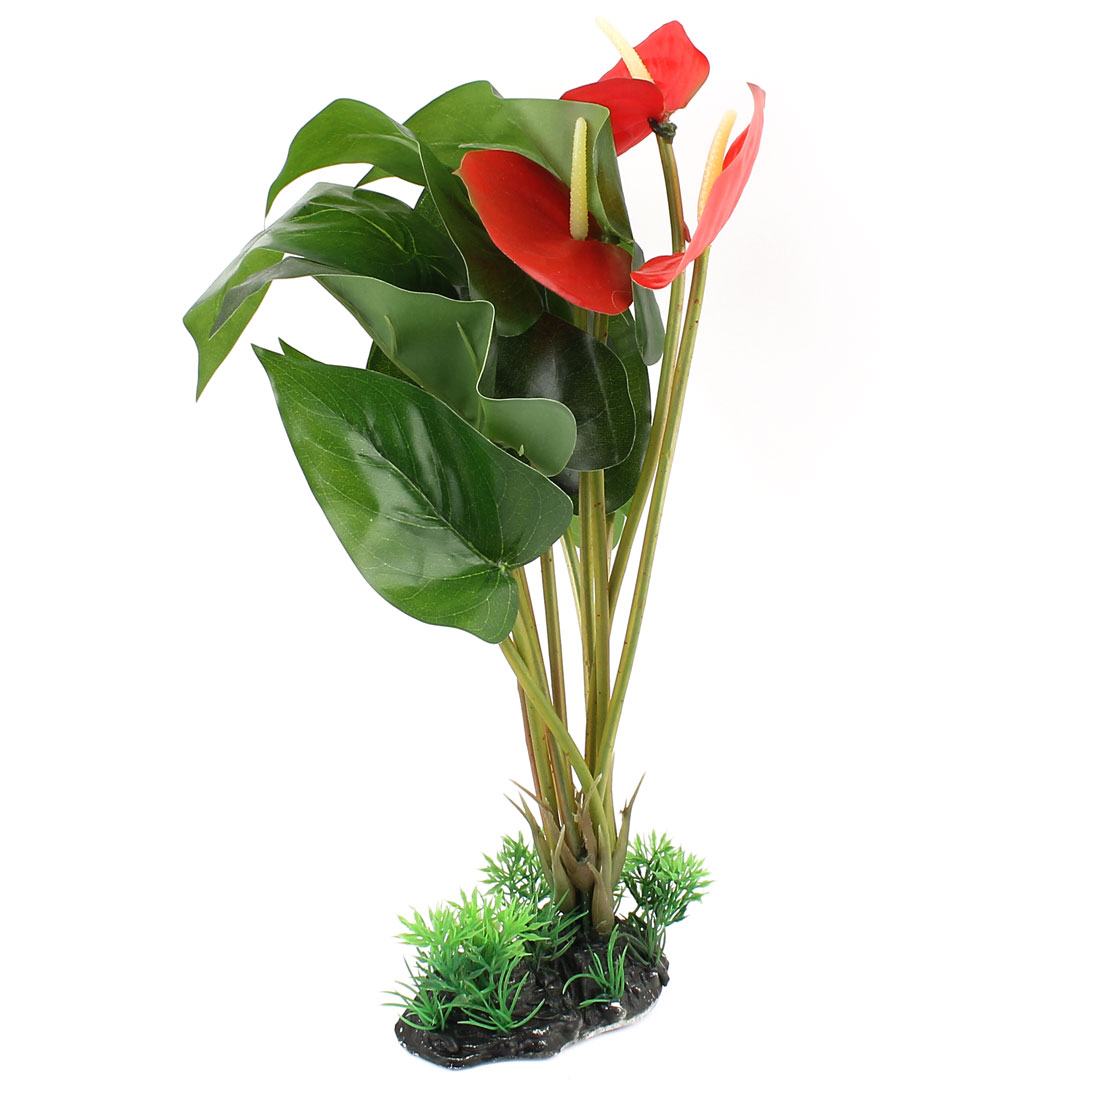 Fabric Leaf Zantedeschia Accent Aquatic Plant Fish Tank Aquarium Decor